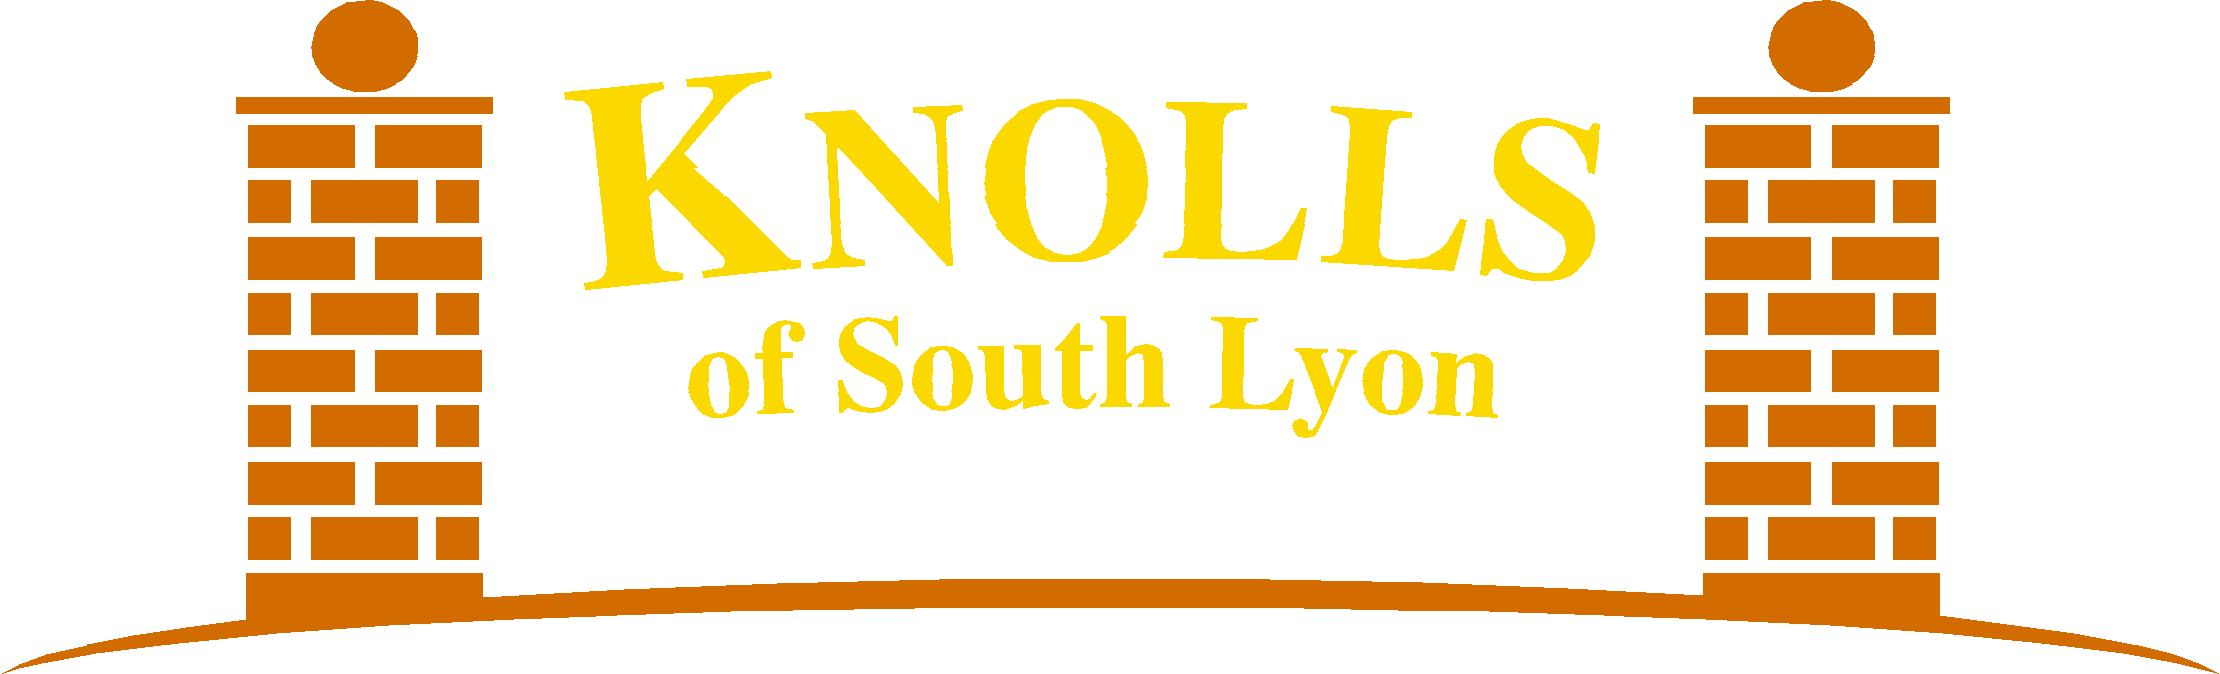 Knolls of South Lyon